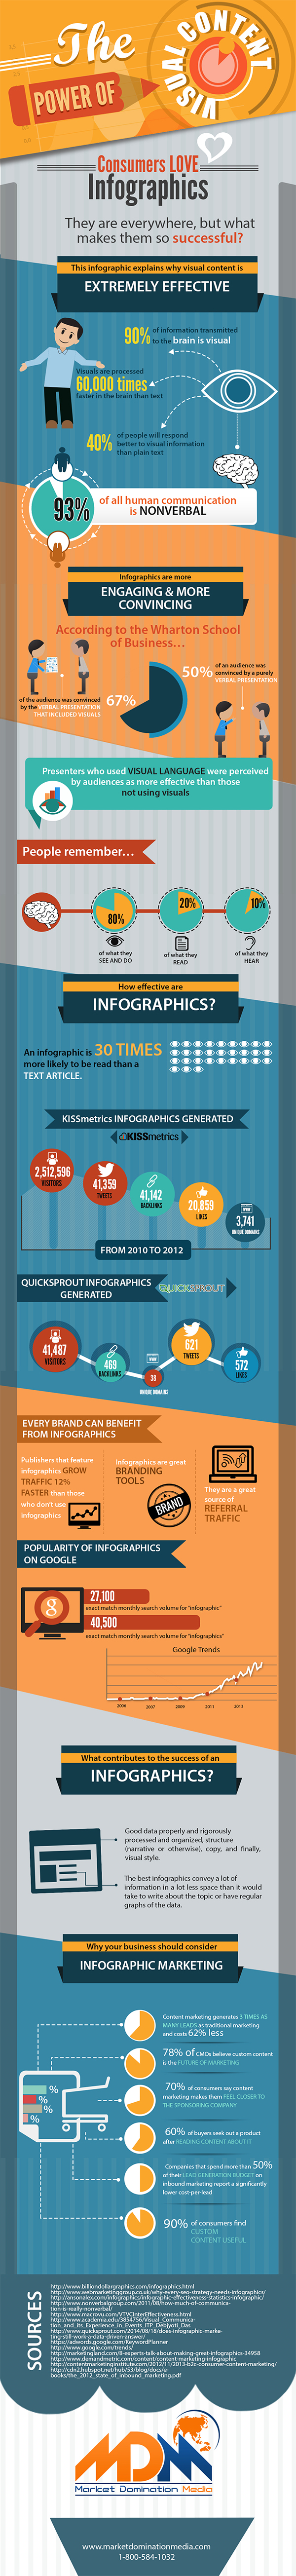 Why Your Internet Marketing Strategy Will Fail if You're Not Using Infographics